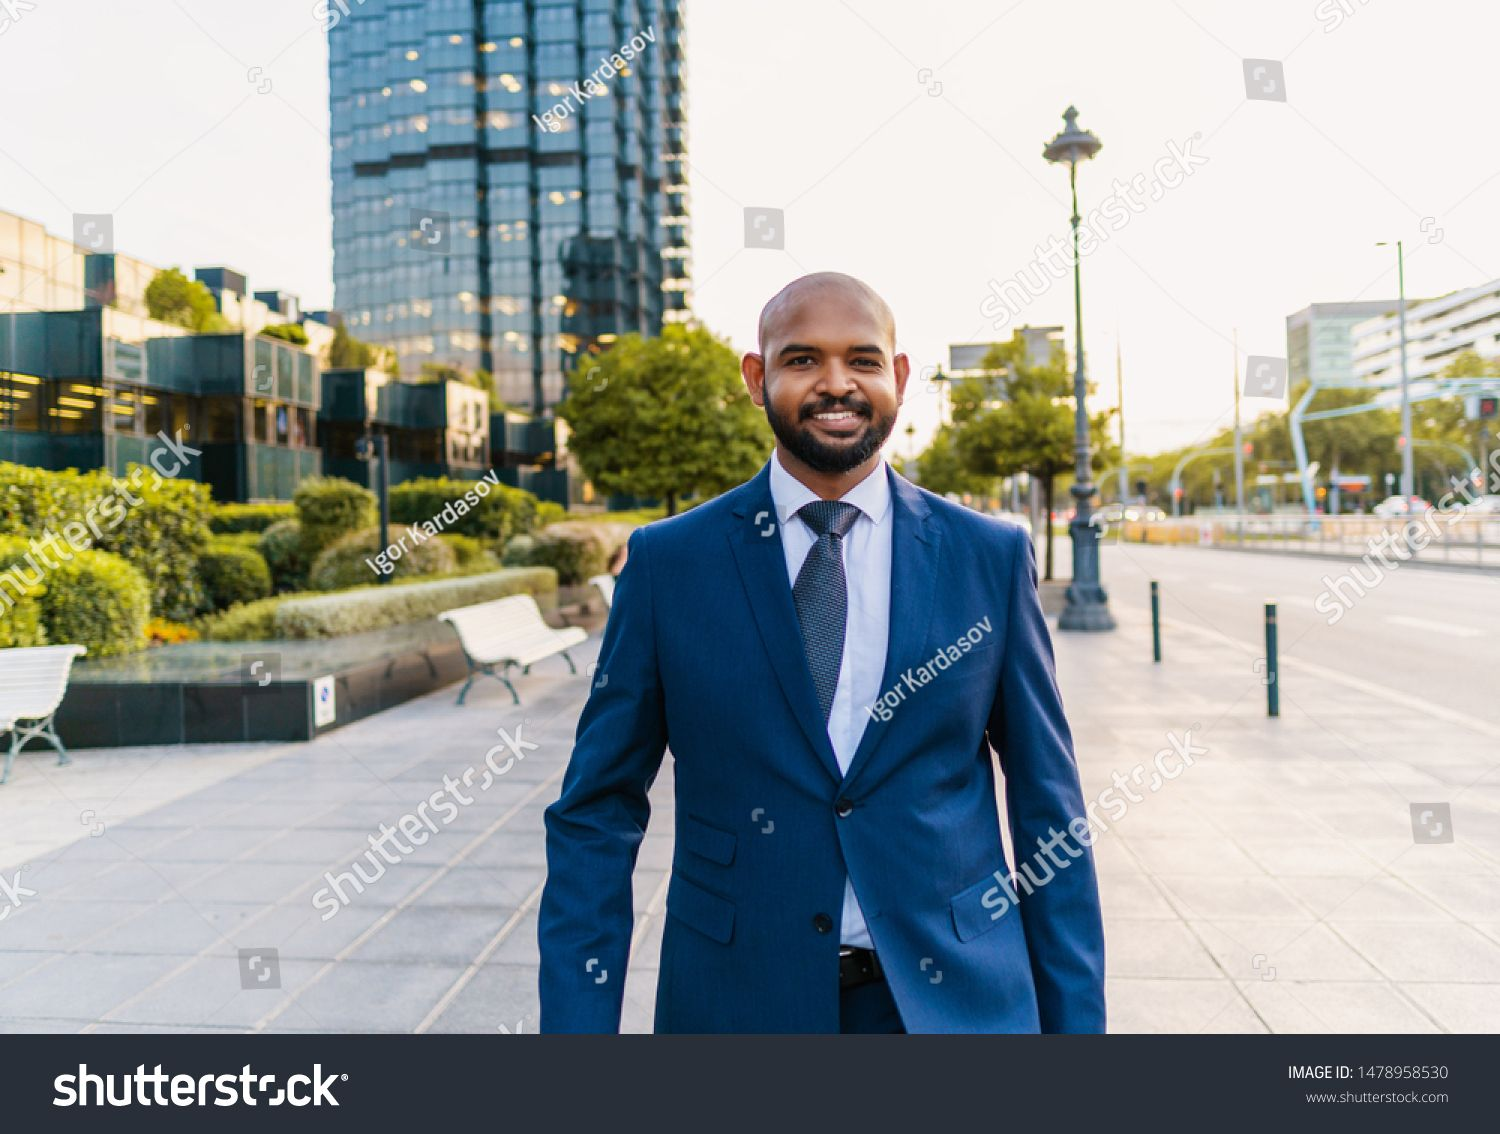 Indian Businessman Wearing Blue Suit Walking Near Office Or Hotel Business Concept Sponsored Sponsored In 2020 Blue Suit Double Breasted Suit Jacket Business Man